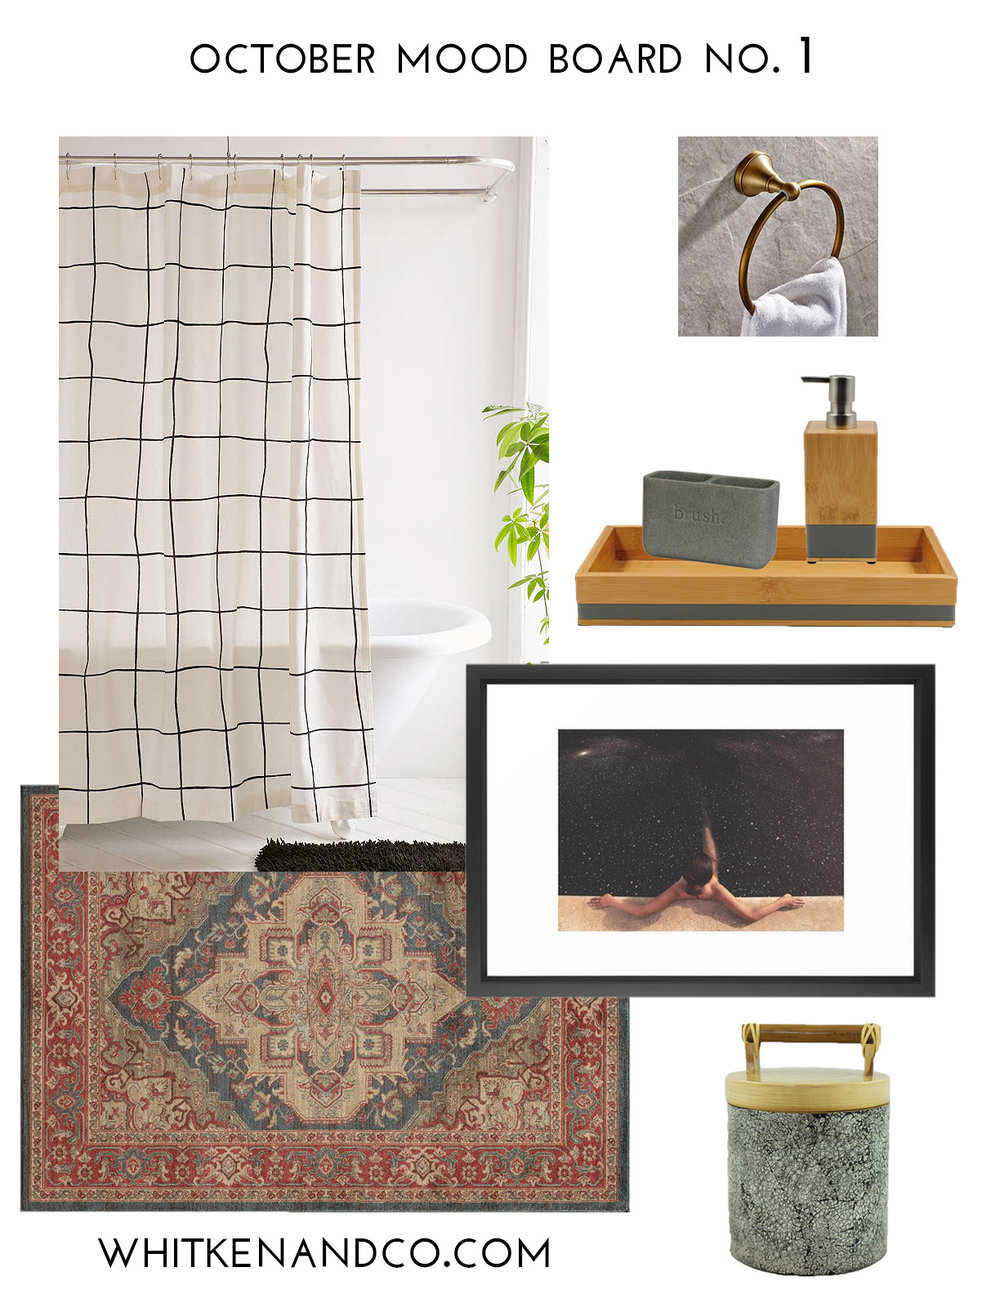 October Mood Board: No. 1 - Whitken & Co.